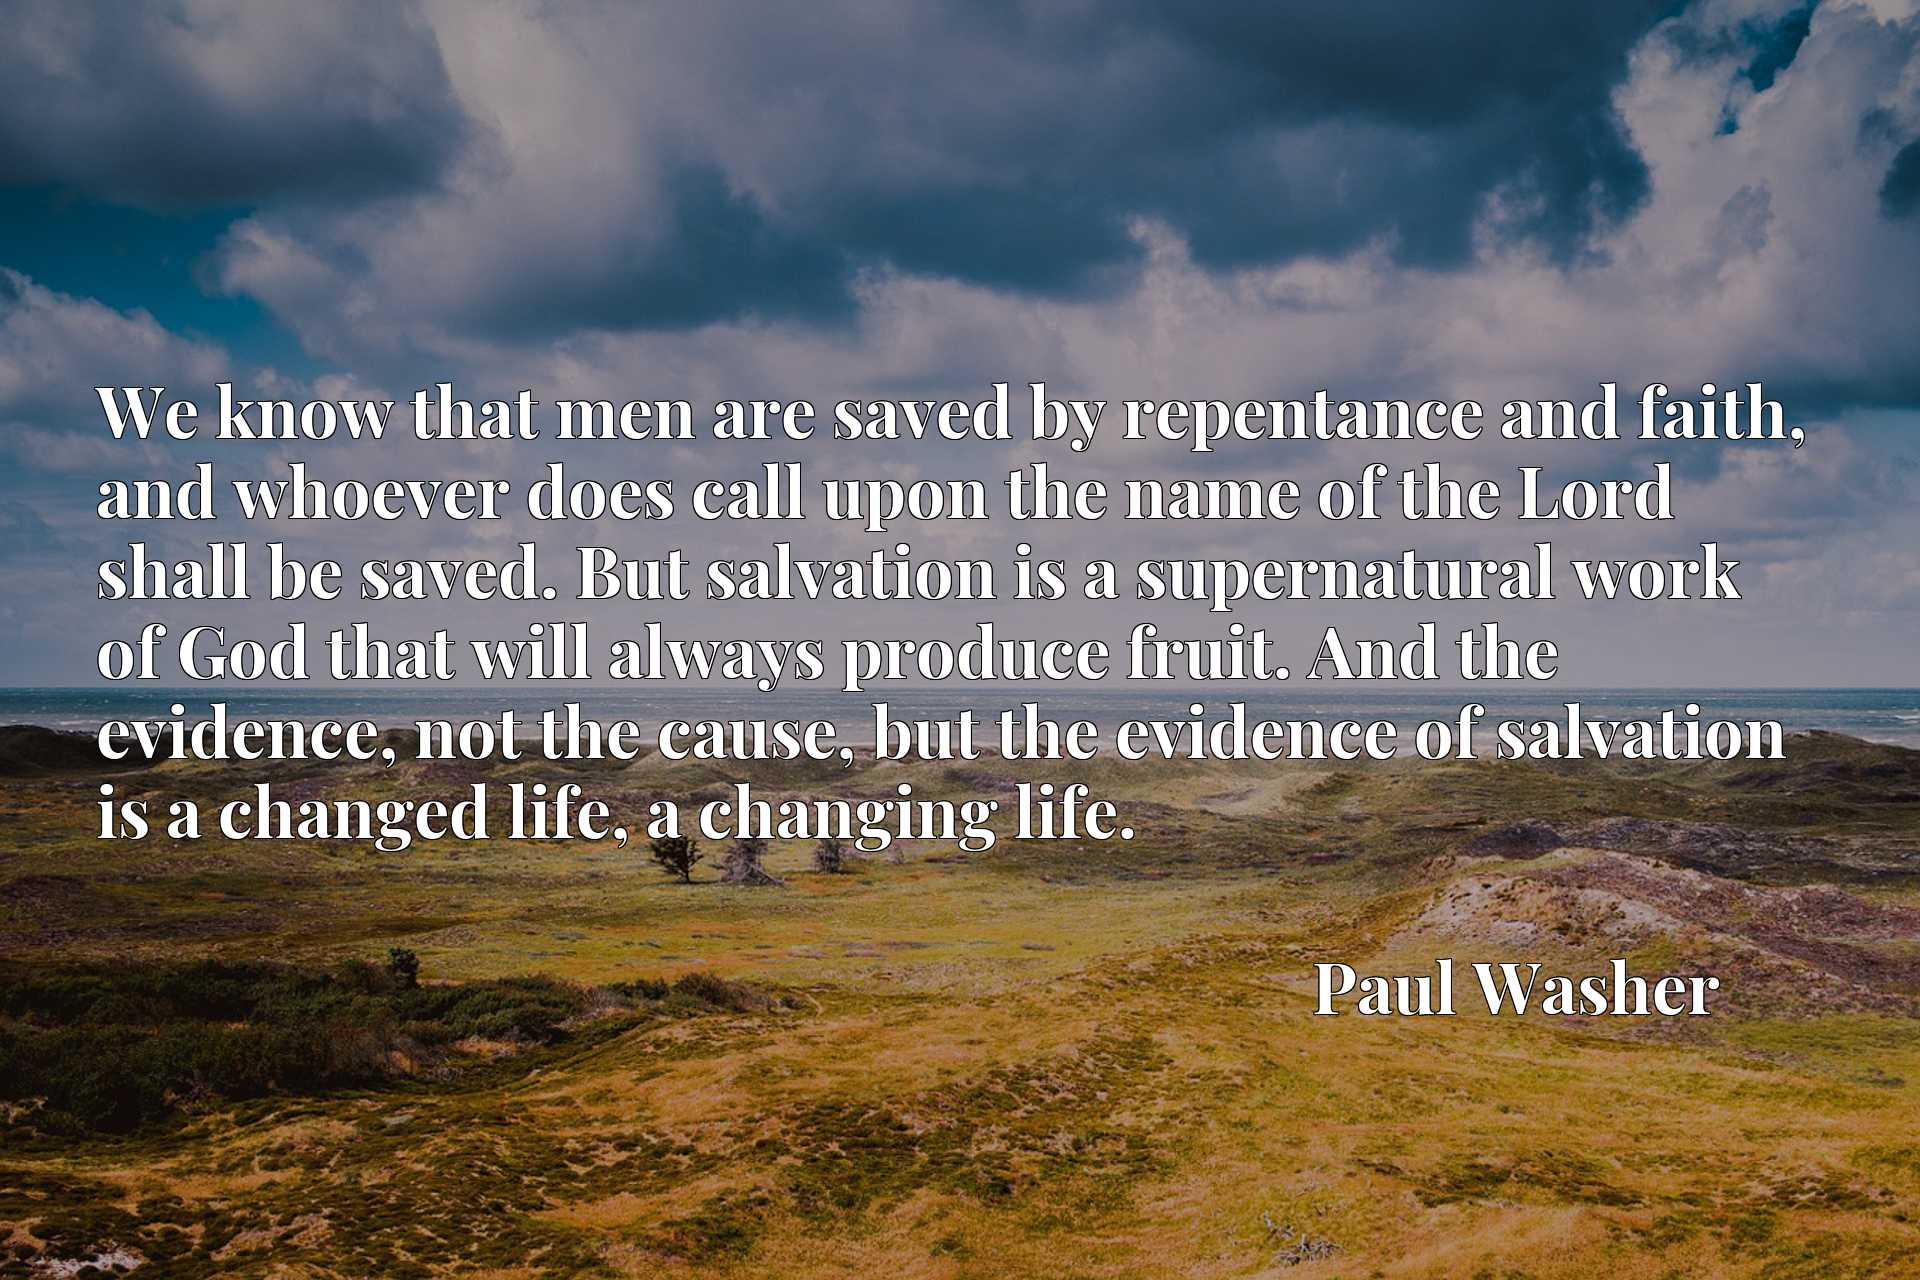 We know that men are saved by repentance and faith, and whoever does call upon the name of the Lord shall be saved. But salvation is a supernatural work of God that will always produce fruit. And the evidence, not the cause, but the evidence of salvation is a changed life, a changing life.